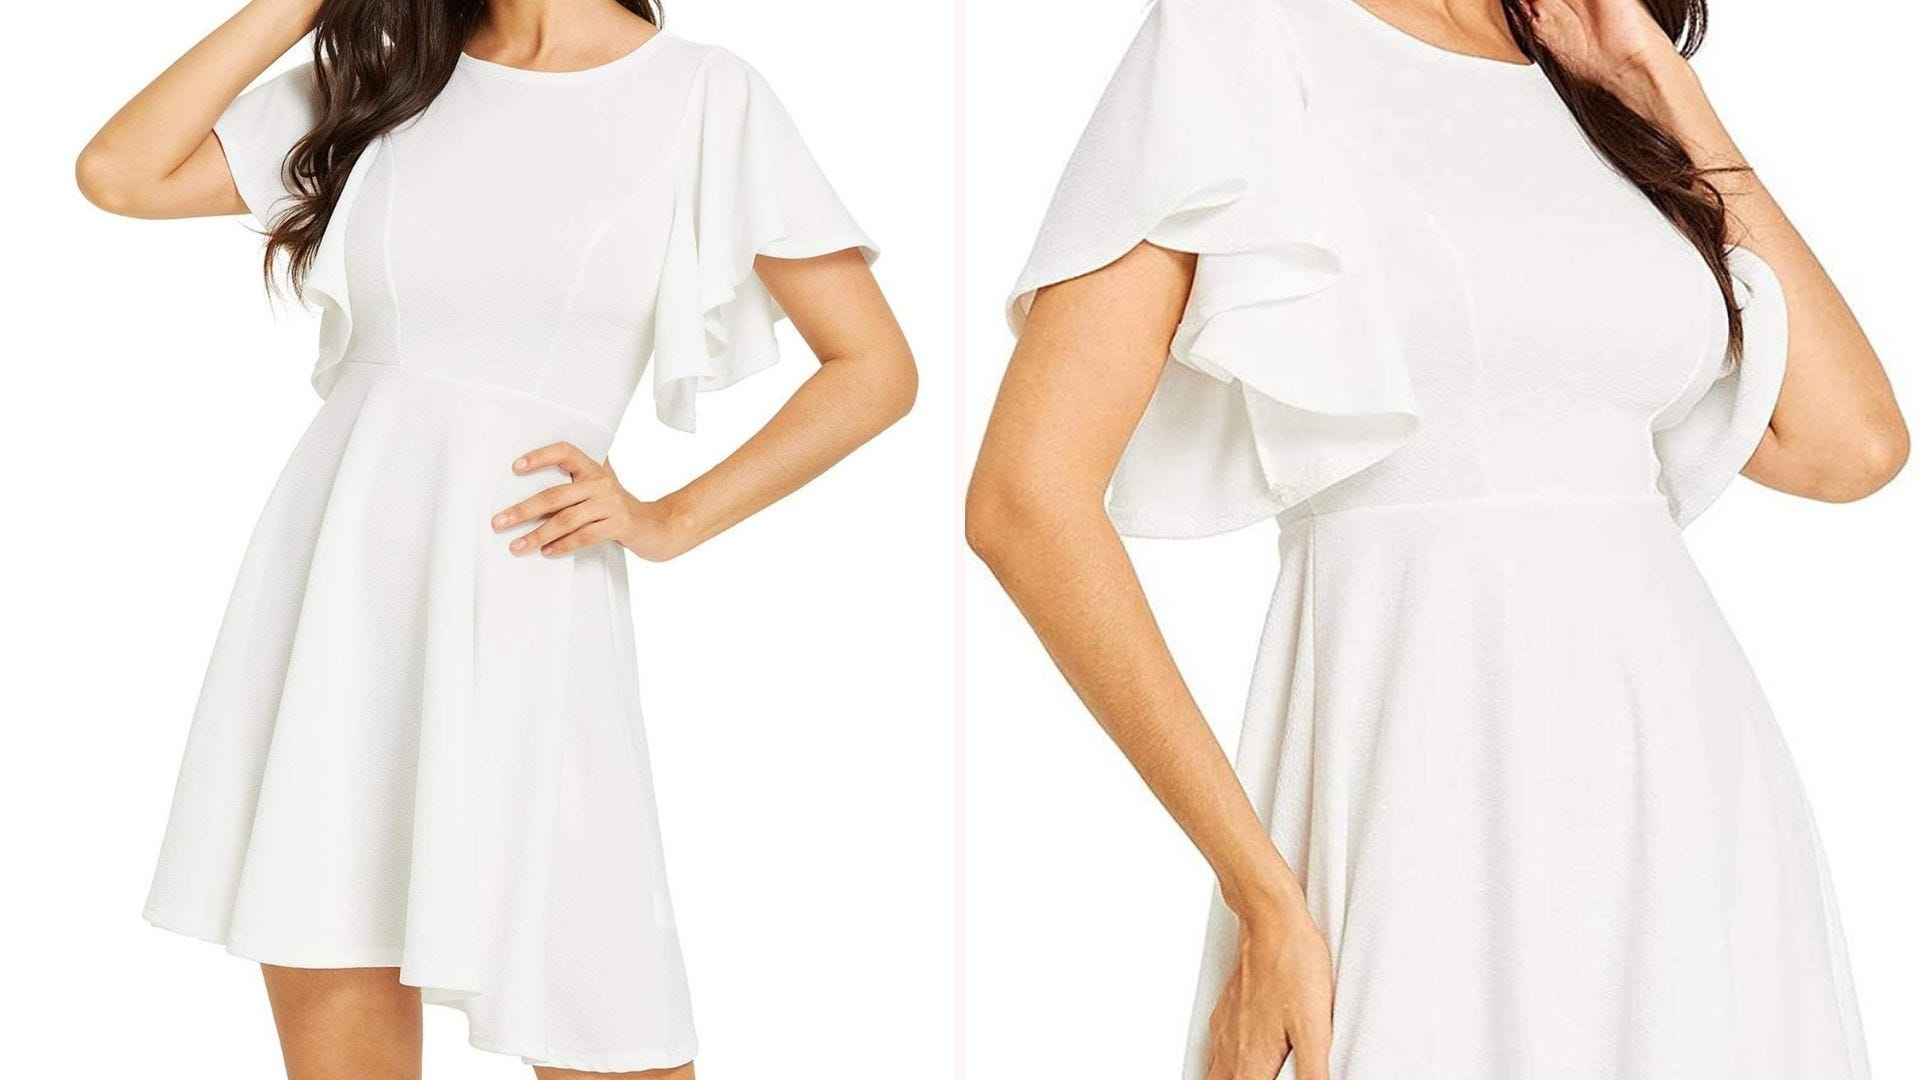 Two images of a woman wearing a short white dress with flowy sleeves